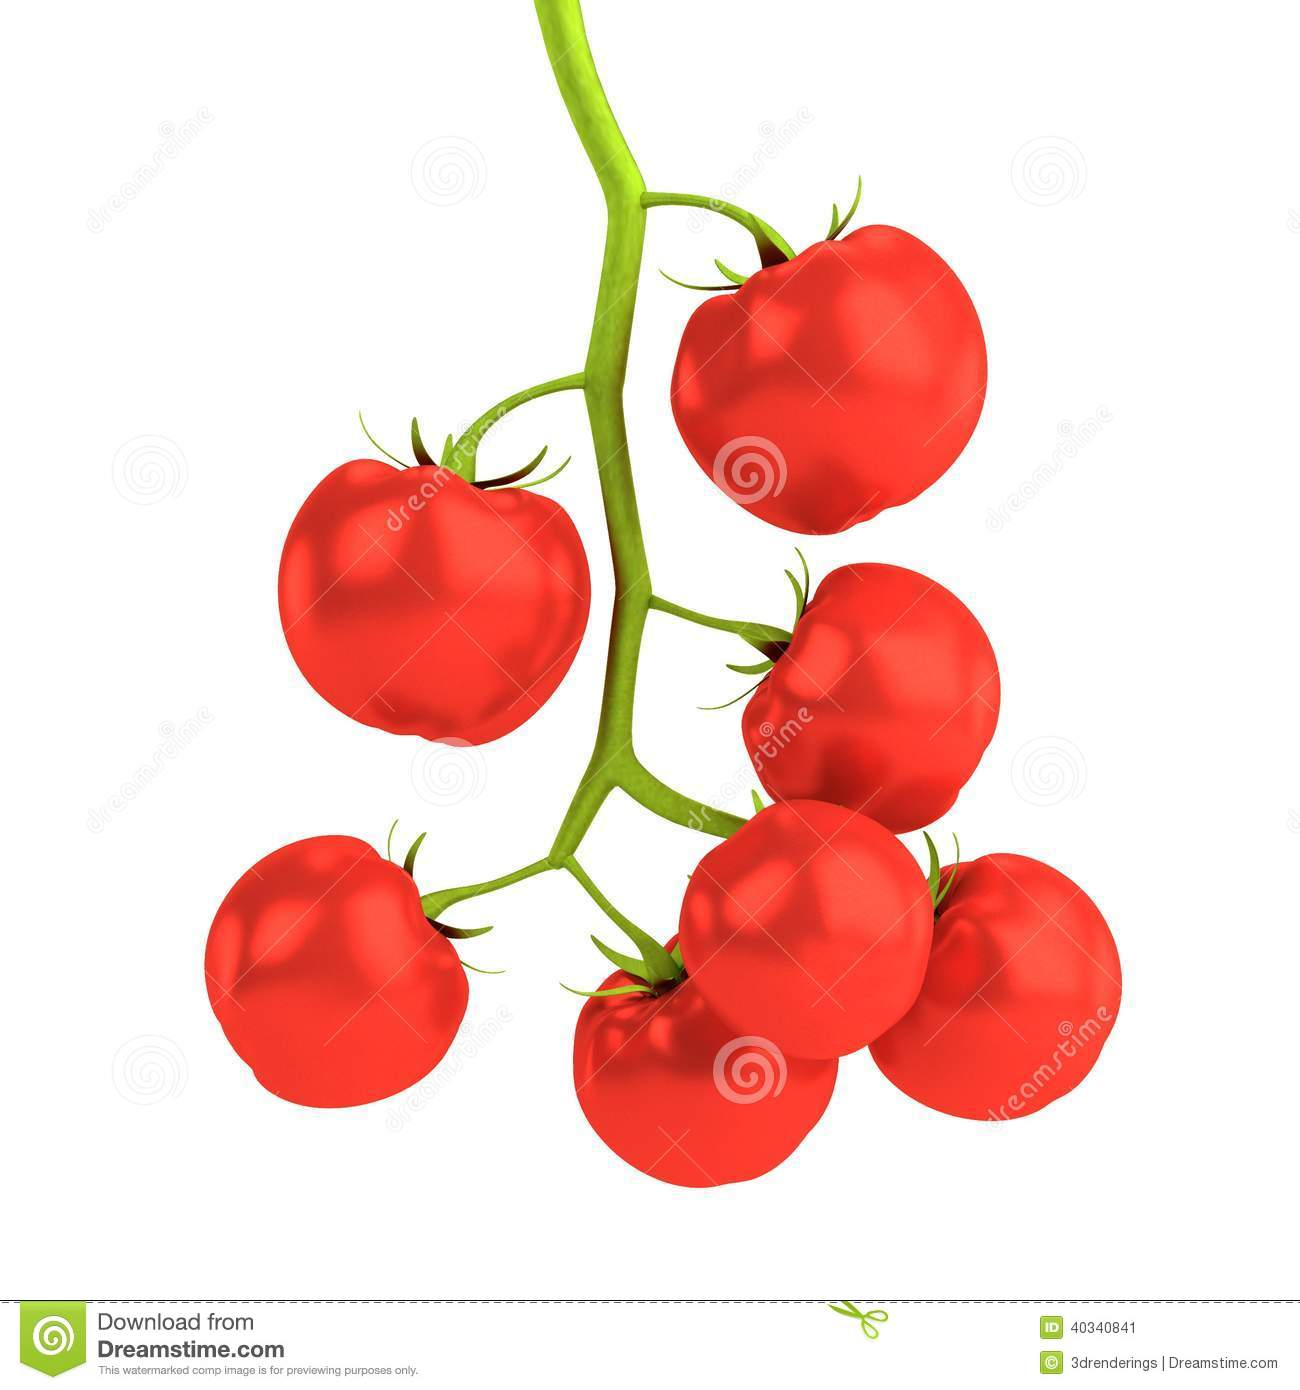 3d rendent des tomates cerises illustration stock illustration du cerise illustration 40340841 - Dessin cerise ...